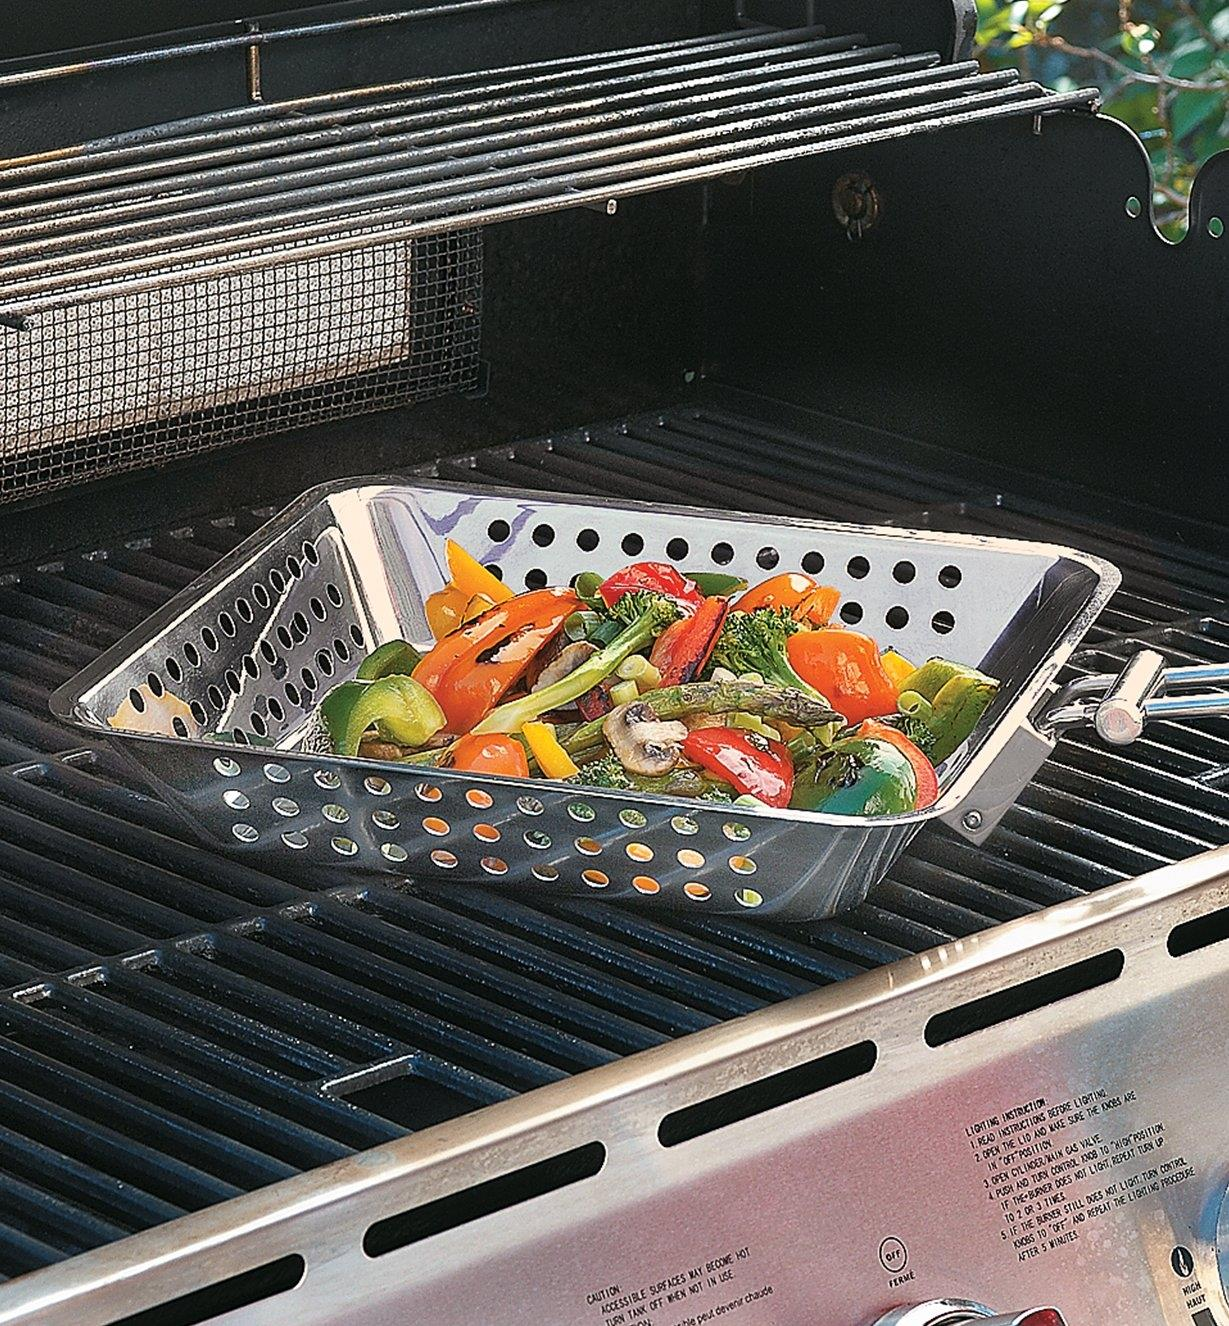 Barbecue Grilling Basket sitting on a grill, filled with vegetables